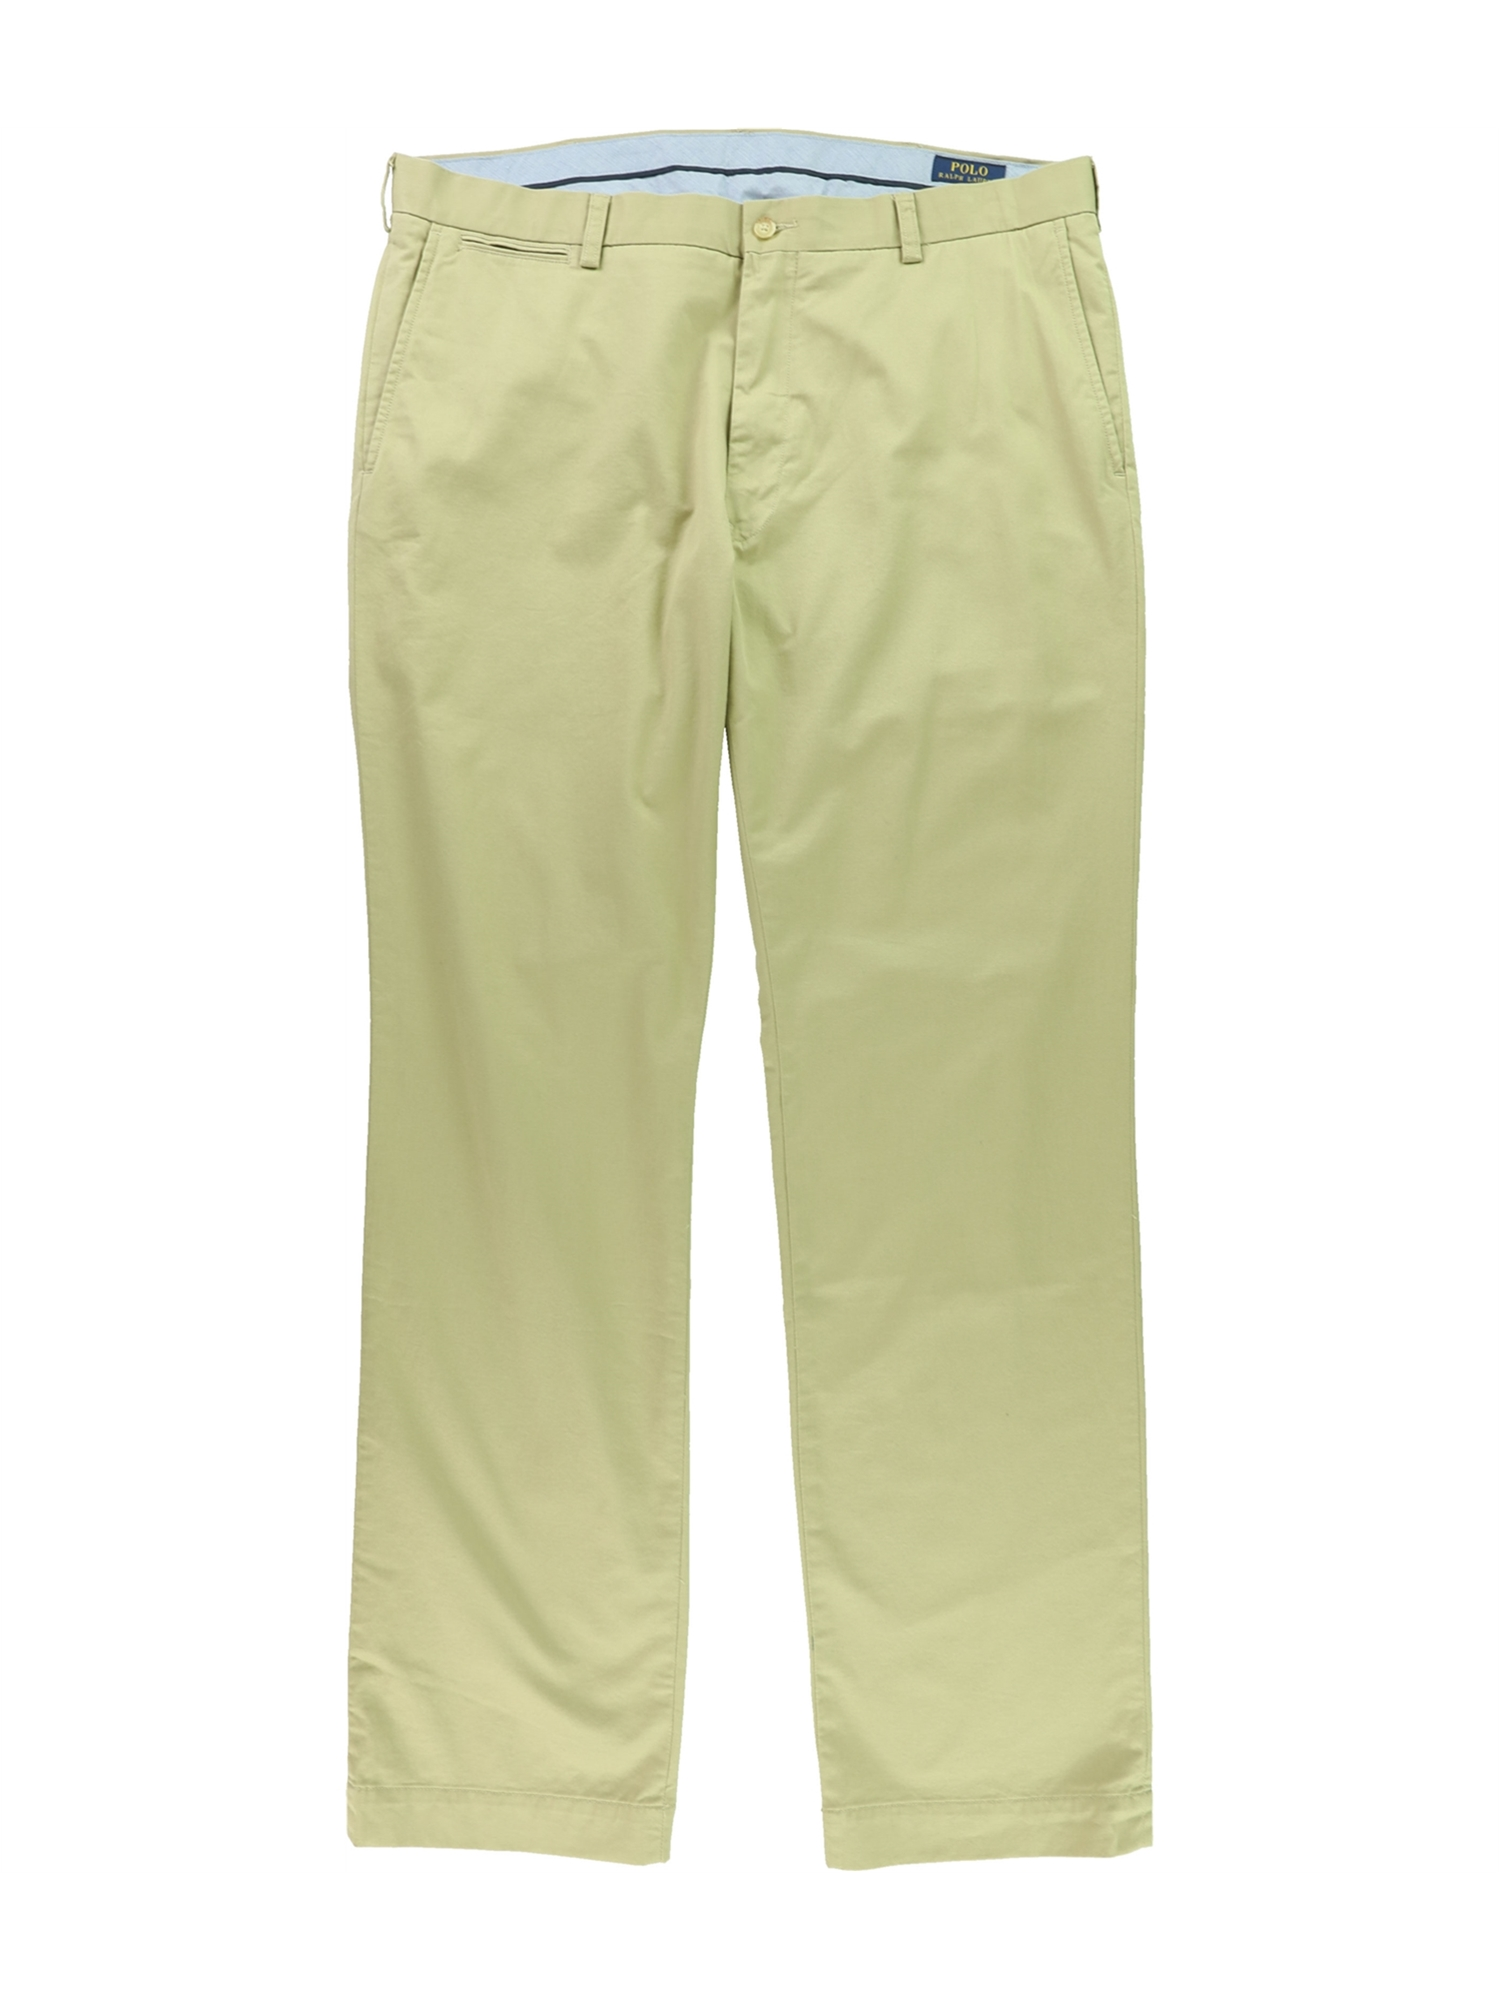 Ralph Lauren Mens Classic-Fit Casual Chino Pants clskhaki 38 Tall/36 - Big & Tall